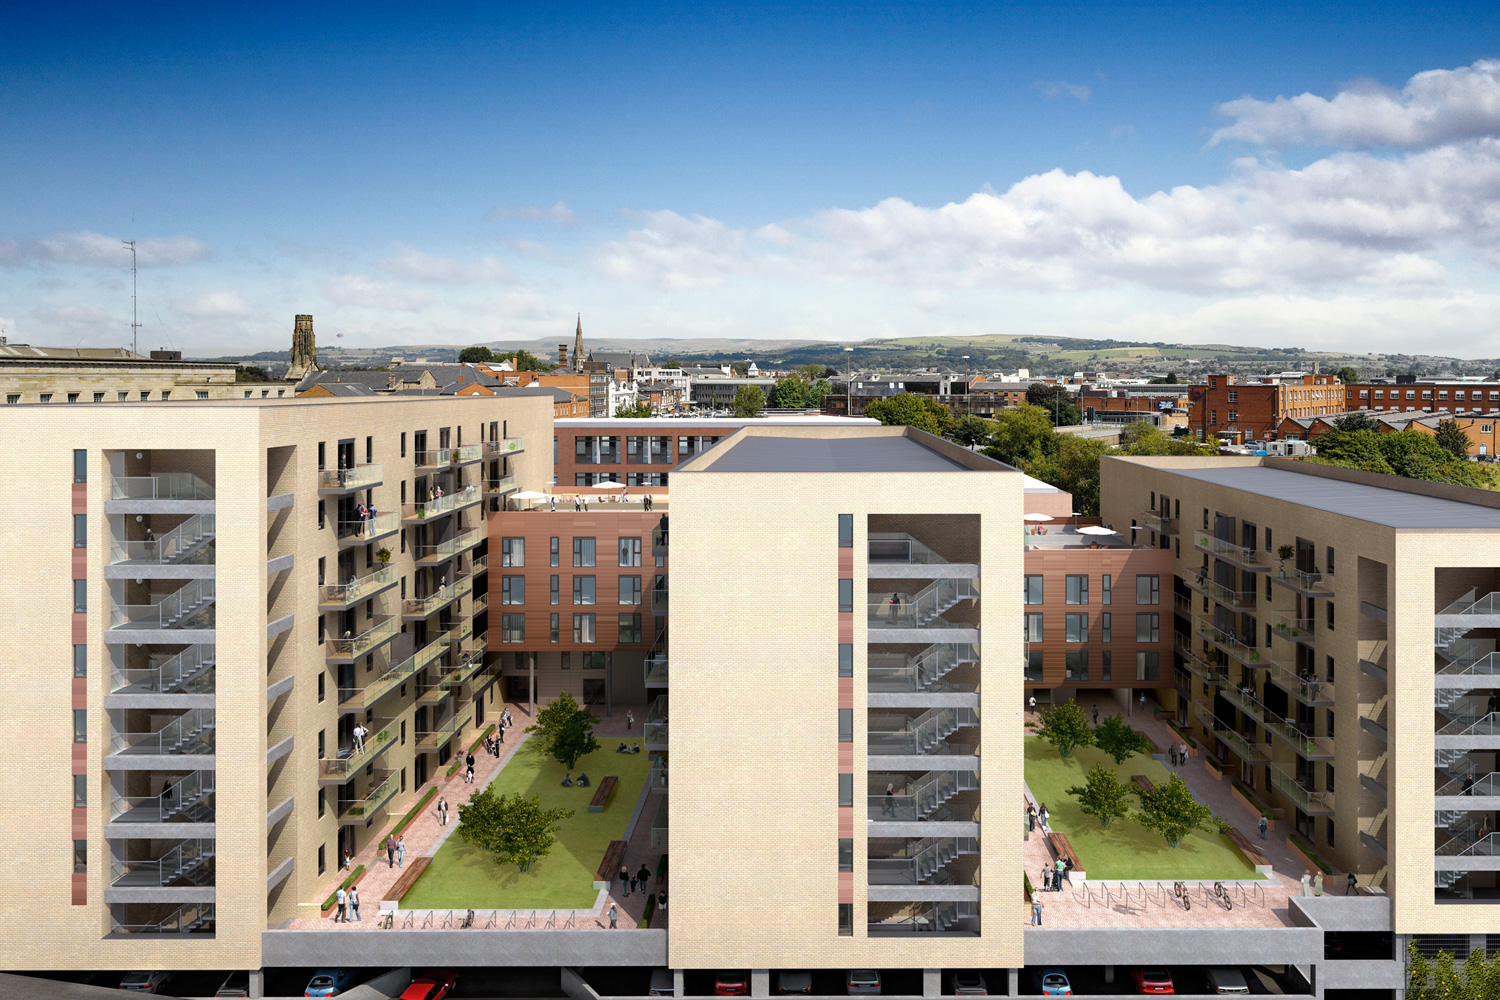 Schemes under consideration include new homes